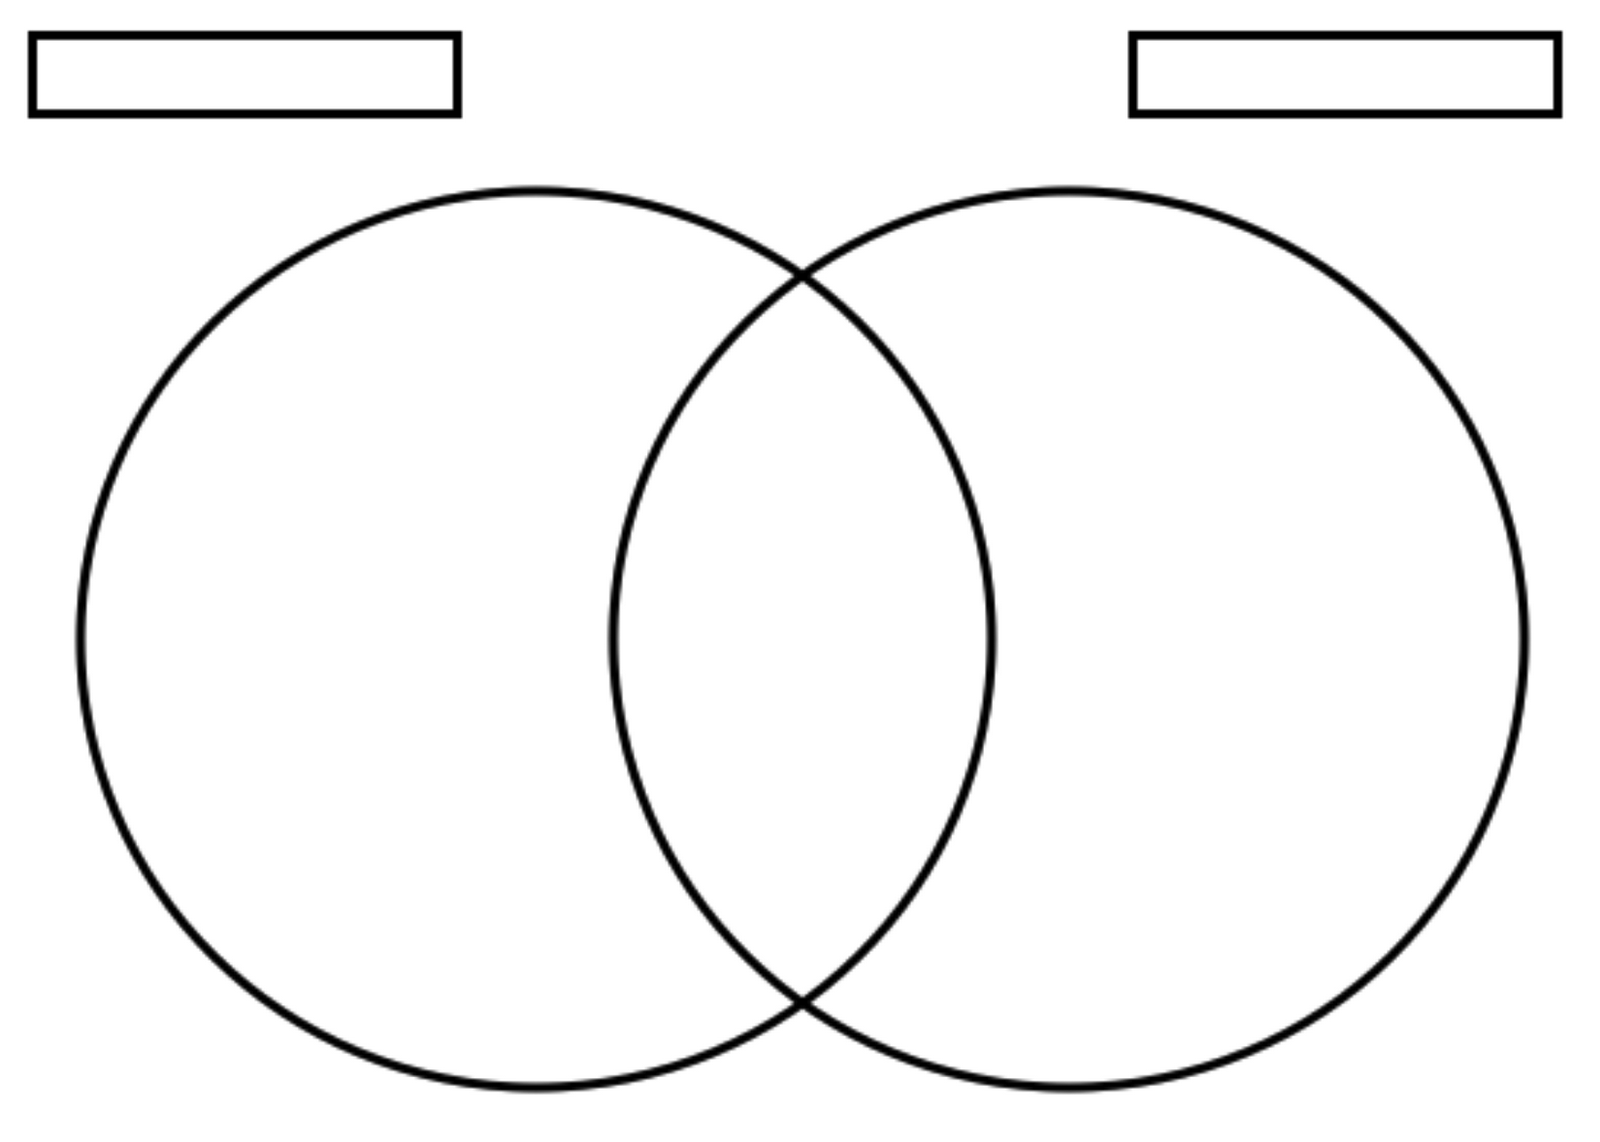 Diagram venn diagram template : VENN DIAGRAM TEMPLATE - Unmasa Dalha